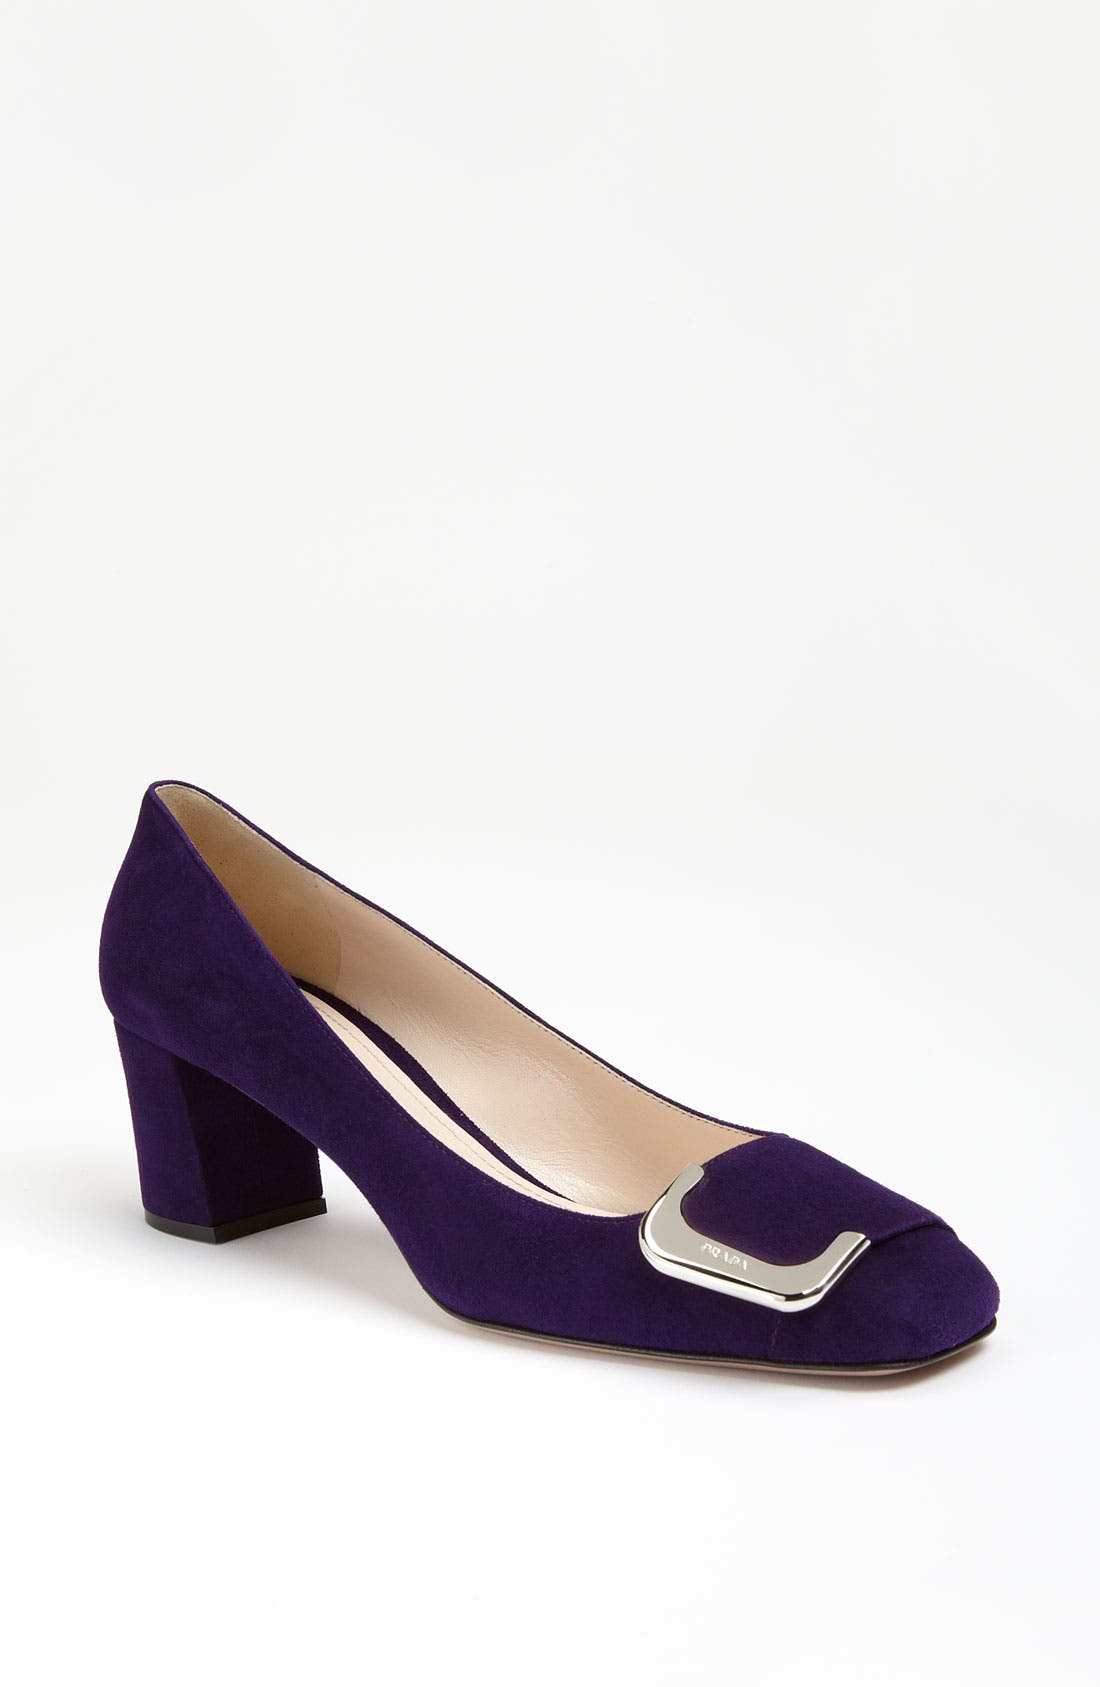 Alternate Image 1 Selected - Prada Buckle Square Heel Pump